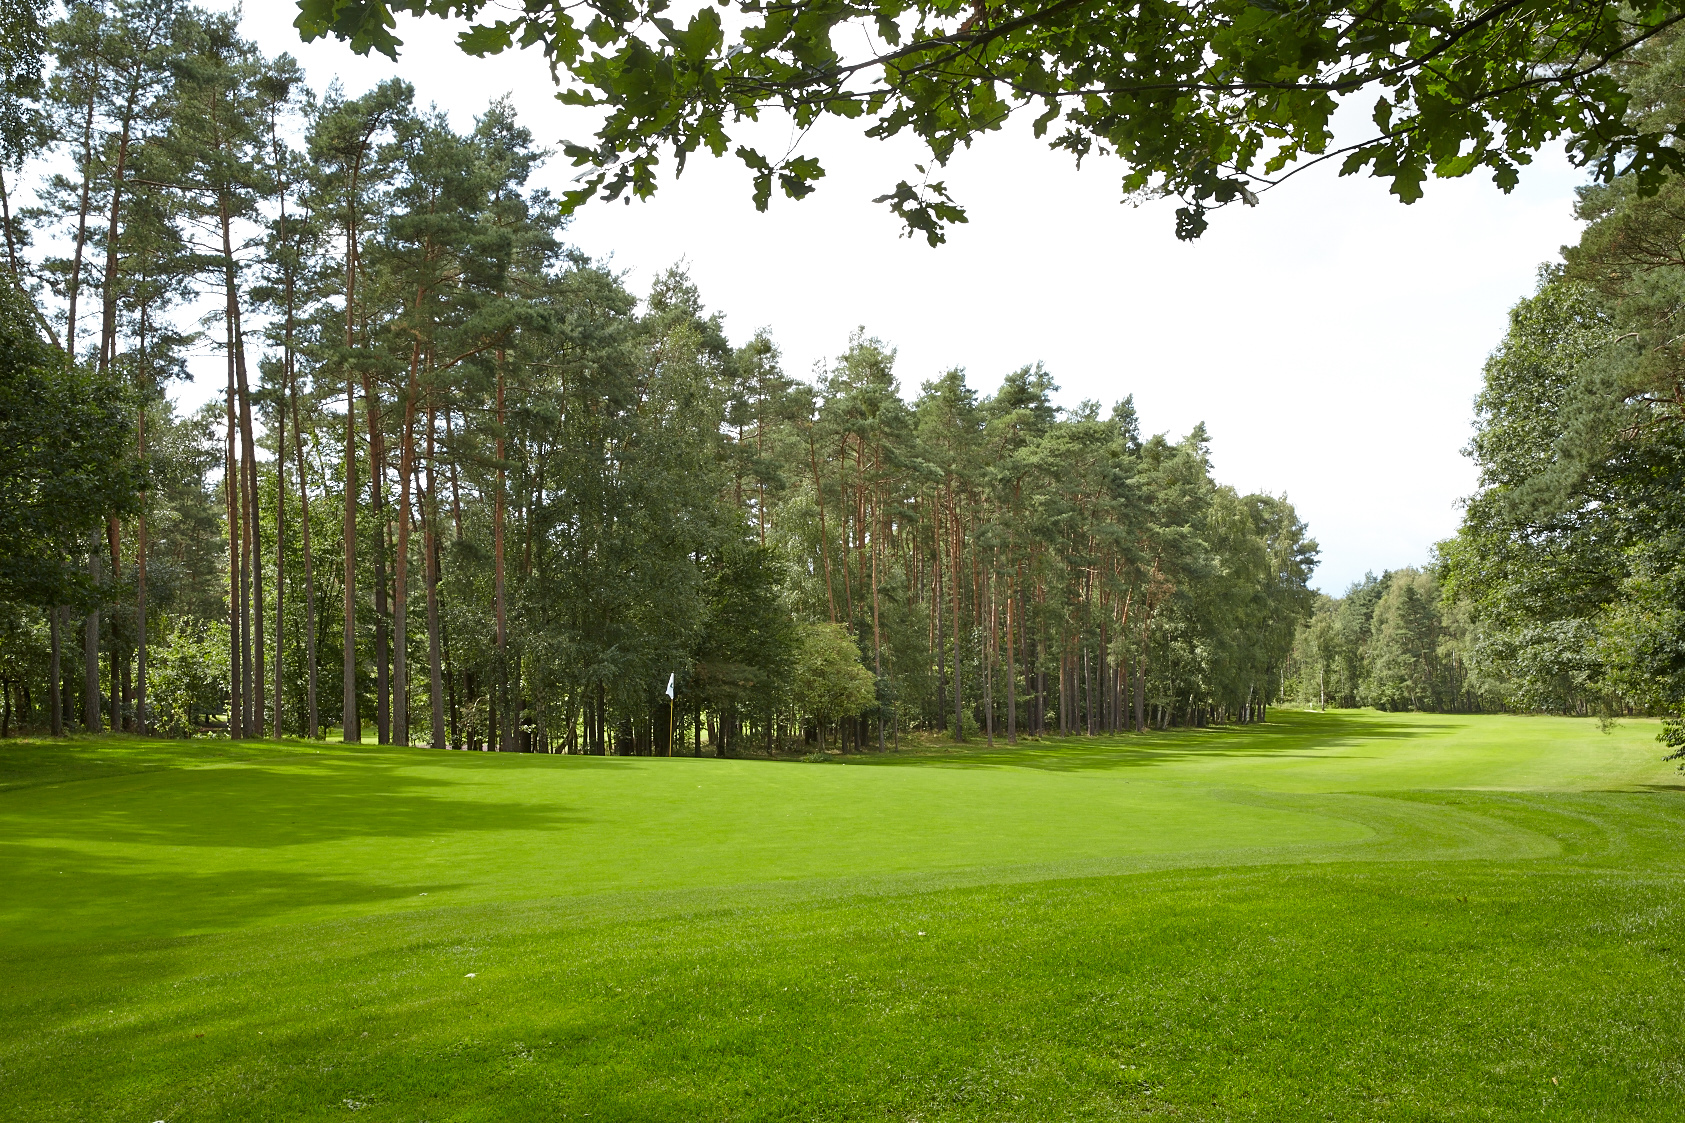 Overview of golf course named Golf Club Am Reichswald